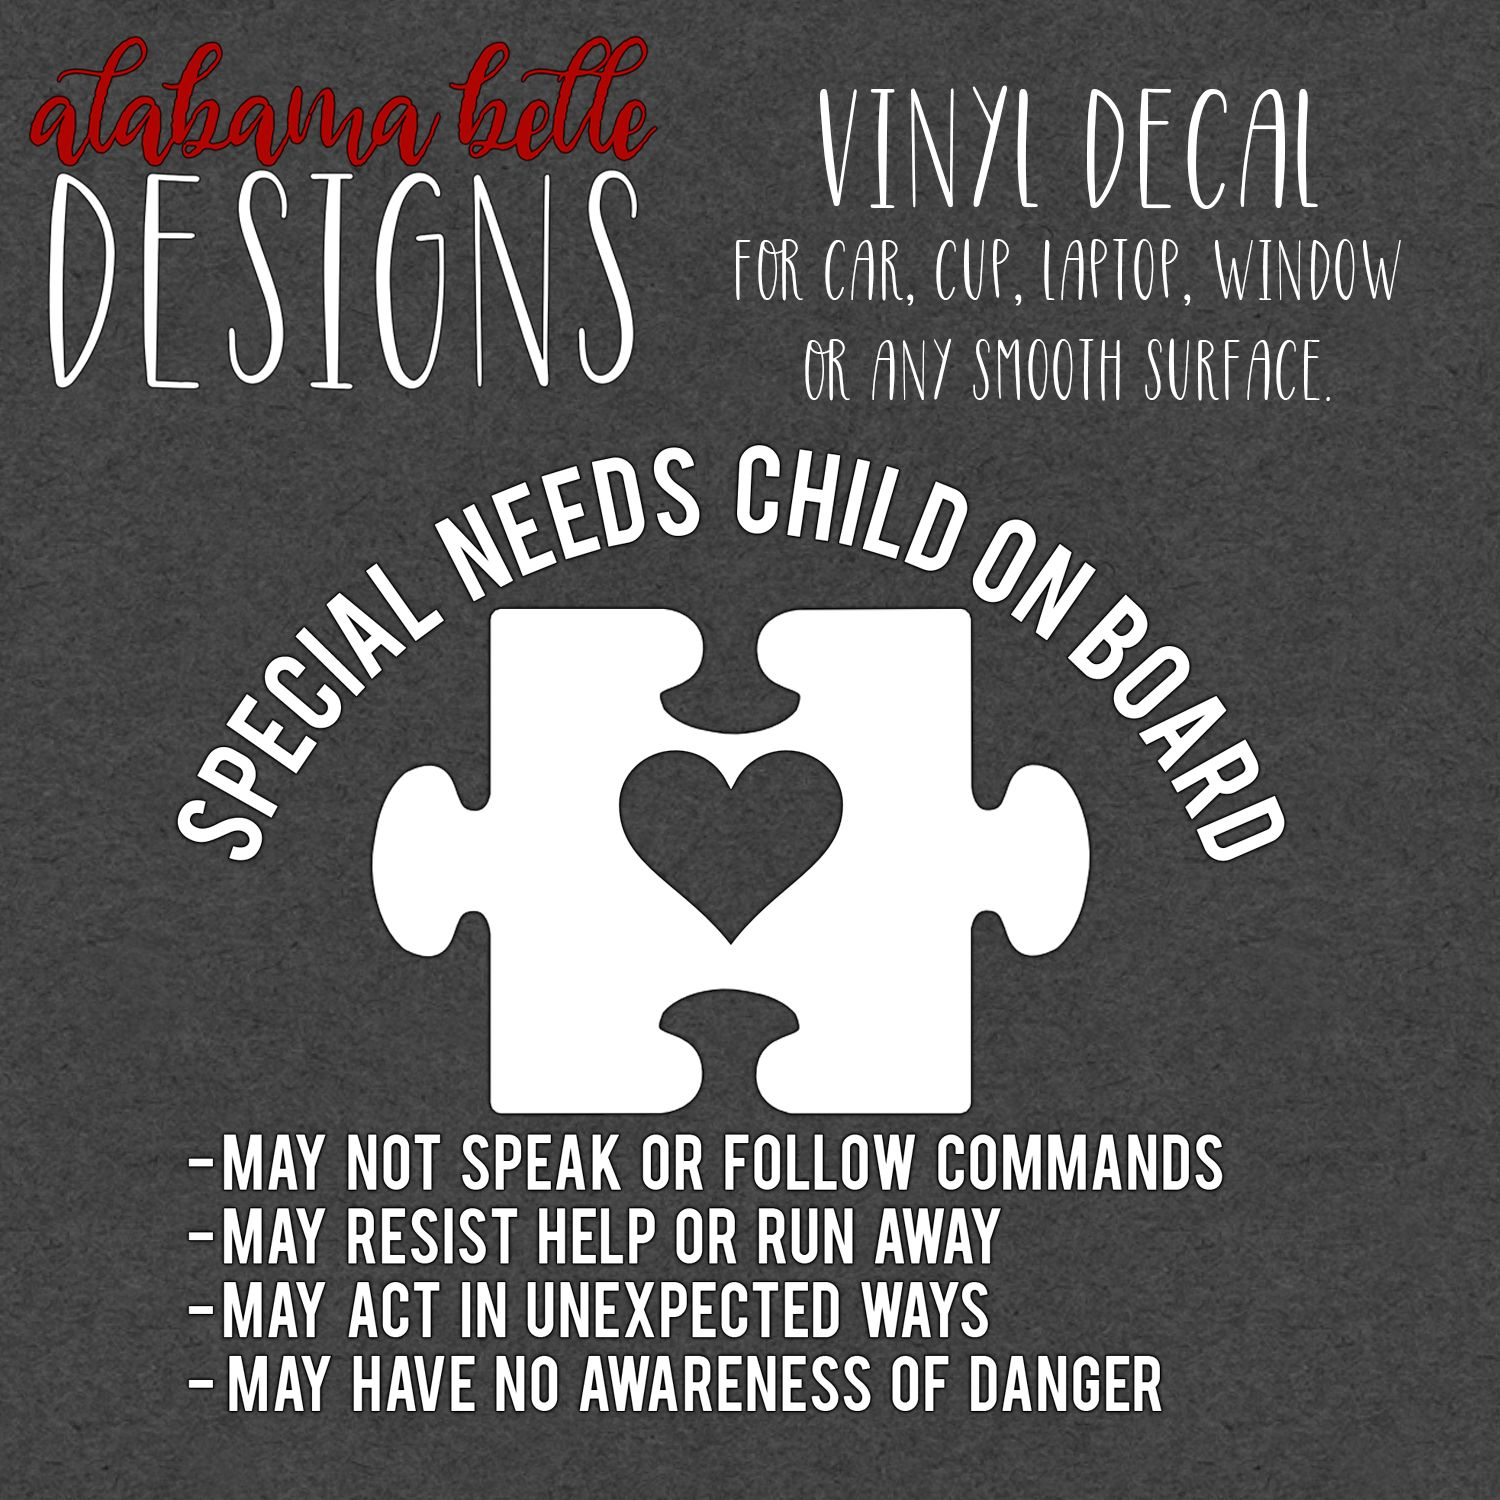 Special Needs Child On Board Vinyl Car Decal Car Decals Vinyl Car Decals Vinyl Projects [ 1500 x 1500 Pixel ]